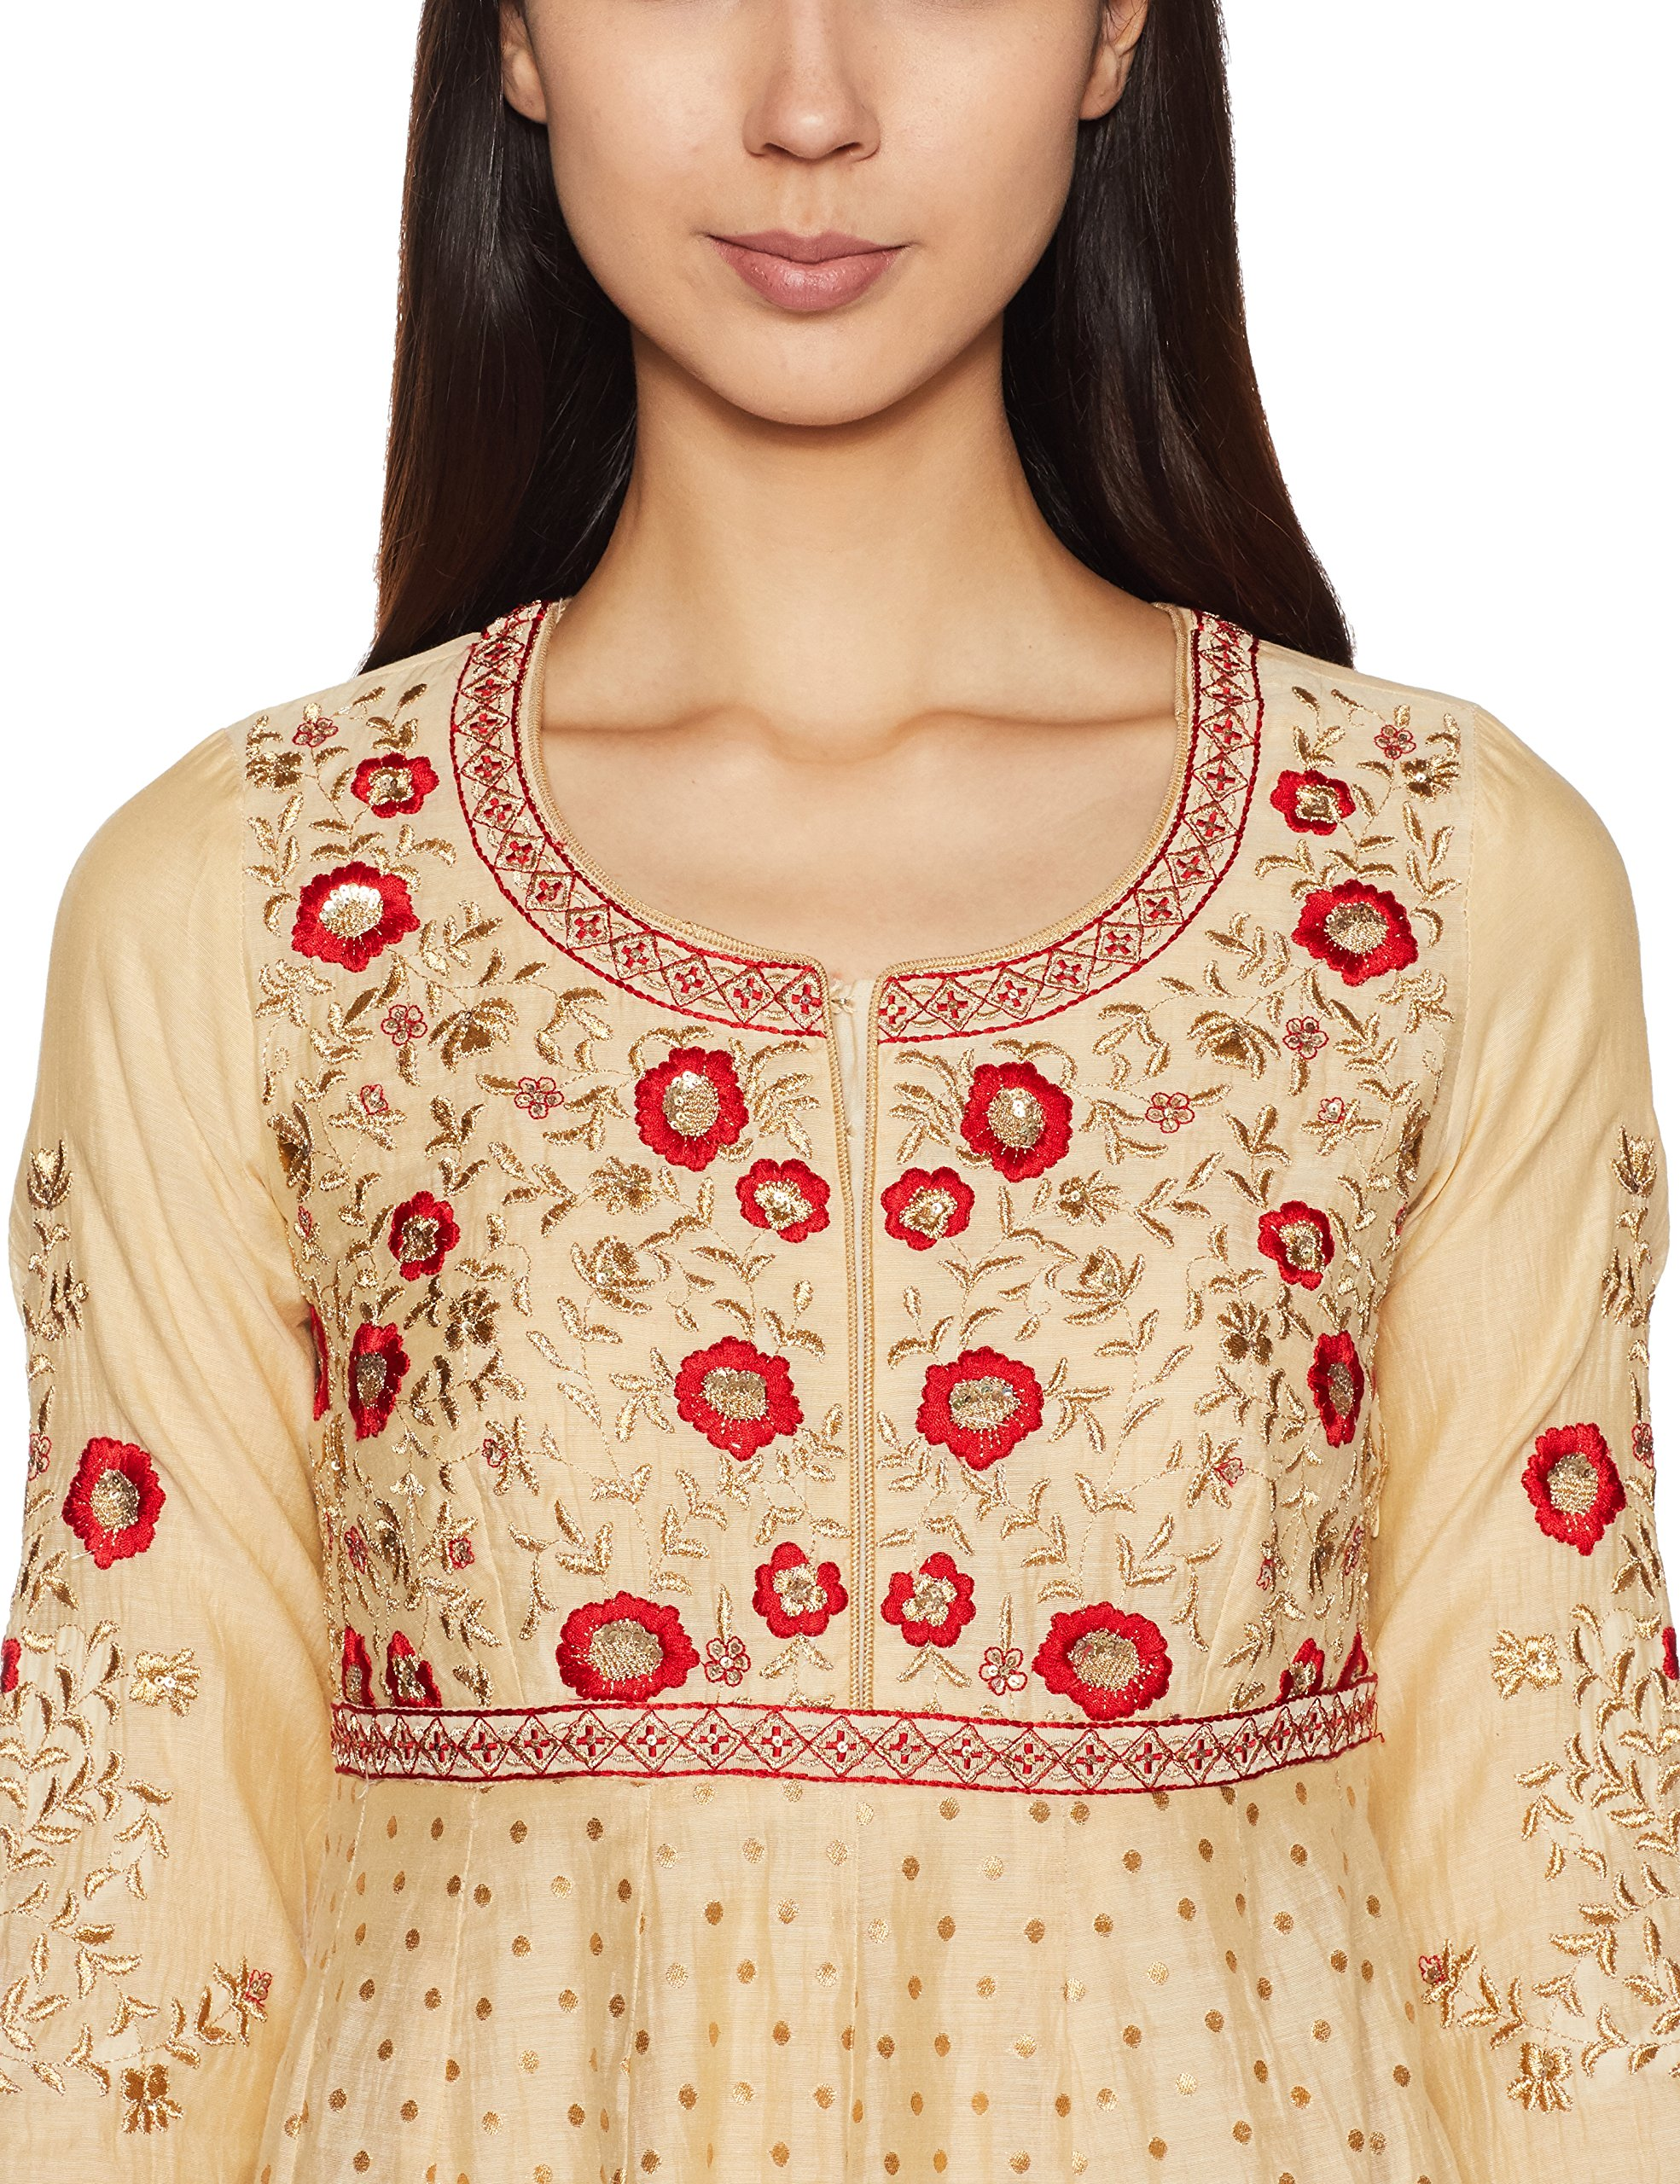 BIBA Women's Anarkali Poly Cotton Suit Set 32 Beige by Biba (Image #3)